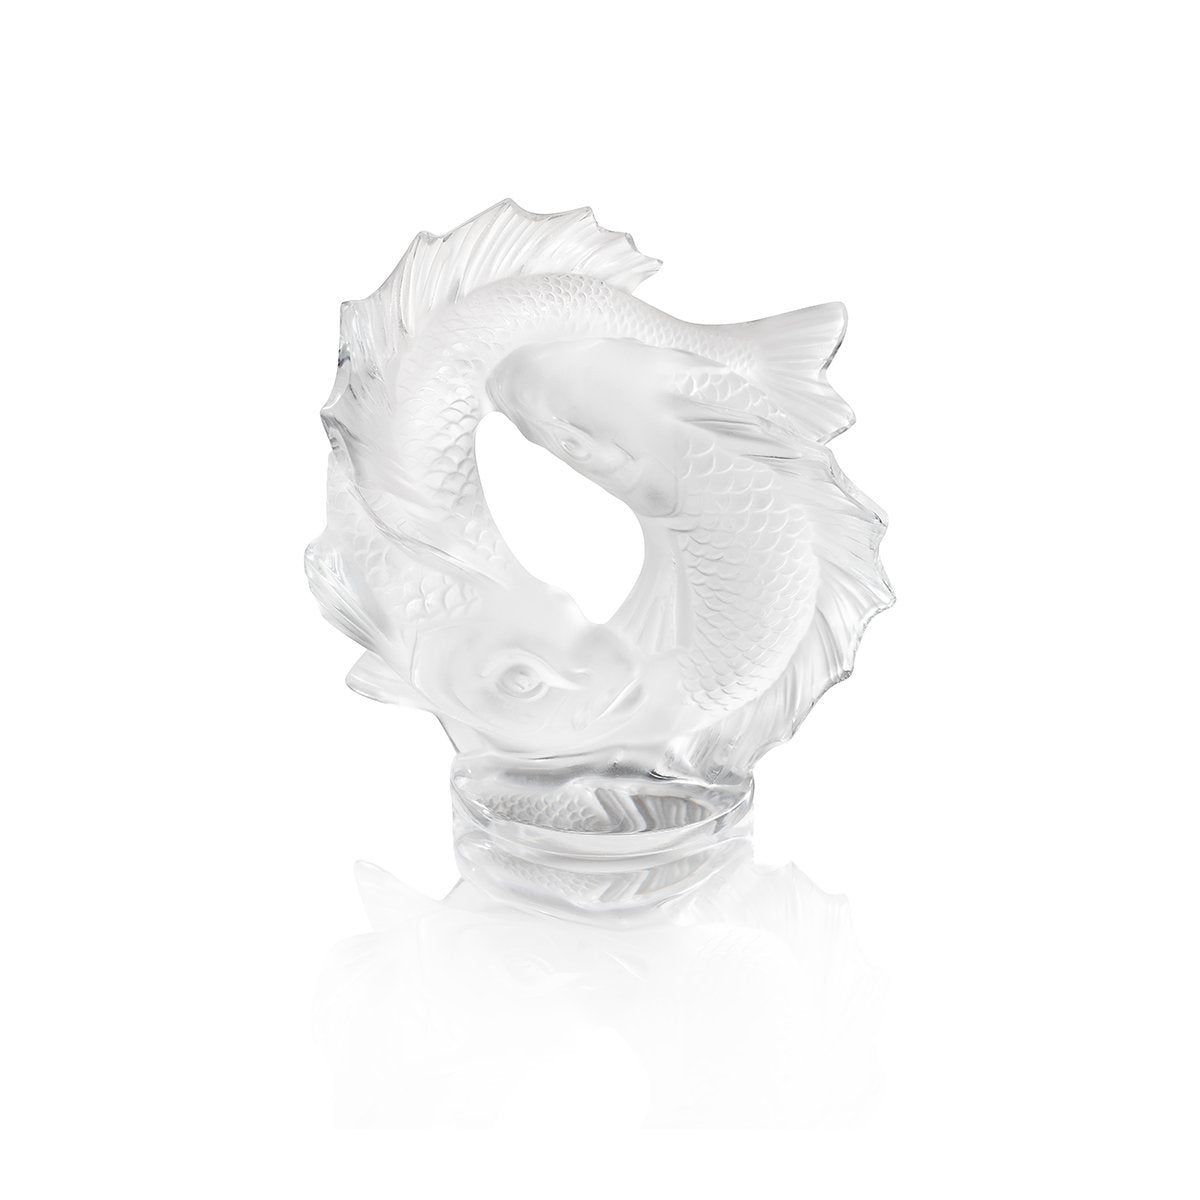 Lalique Double Fish Sculpture in Clear Crystal - Hamilton & Inches